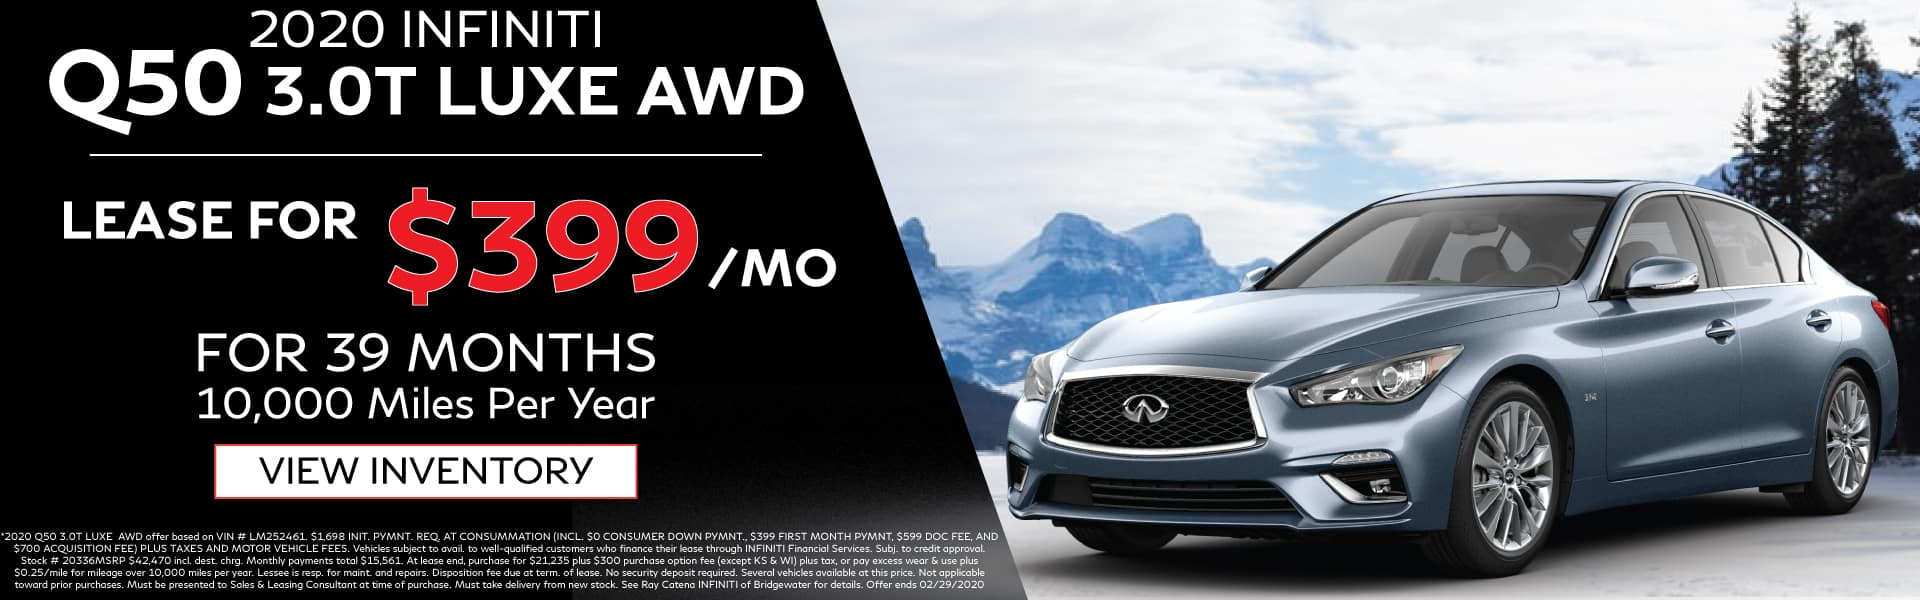 2020 INFINITI Q50 3.0t Luxe AWD. Lease for $399 a month for 39 months. 10,000 miles per year. See retailer for complete details. Image is of a 2020 Q50 on the snow next to a mountainside.